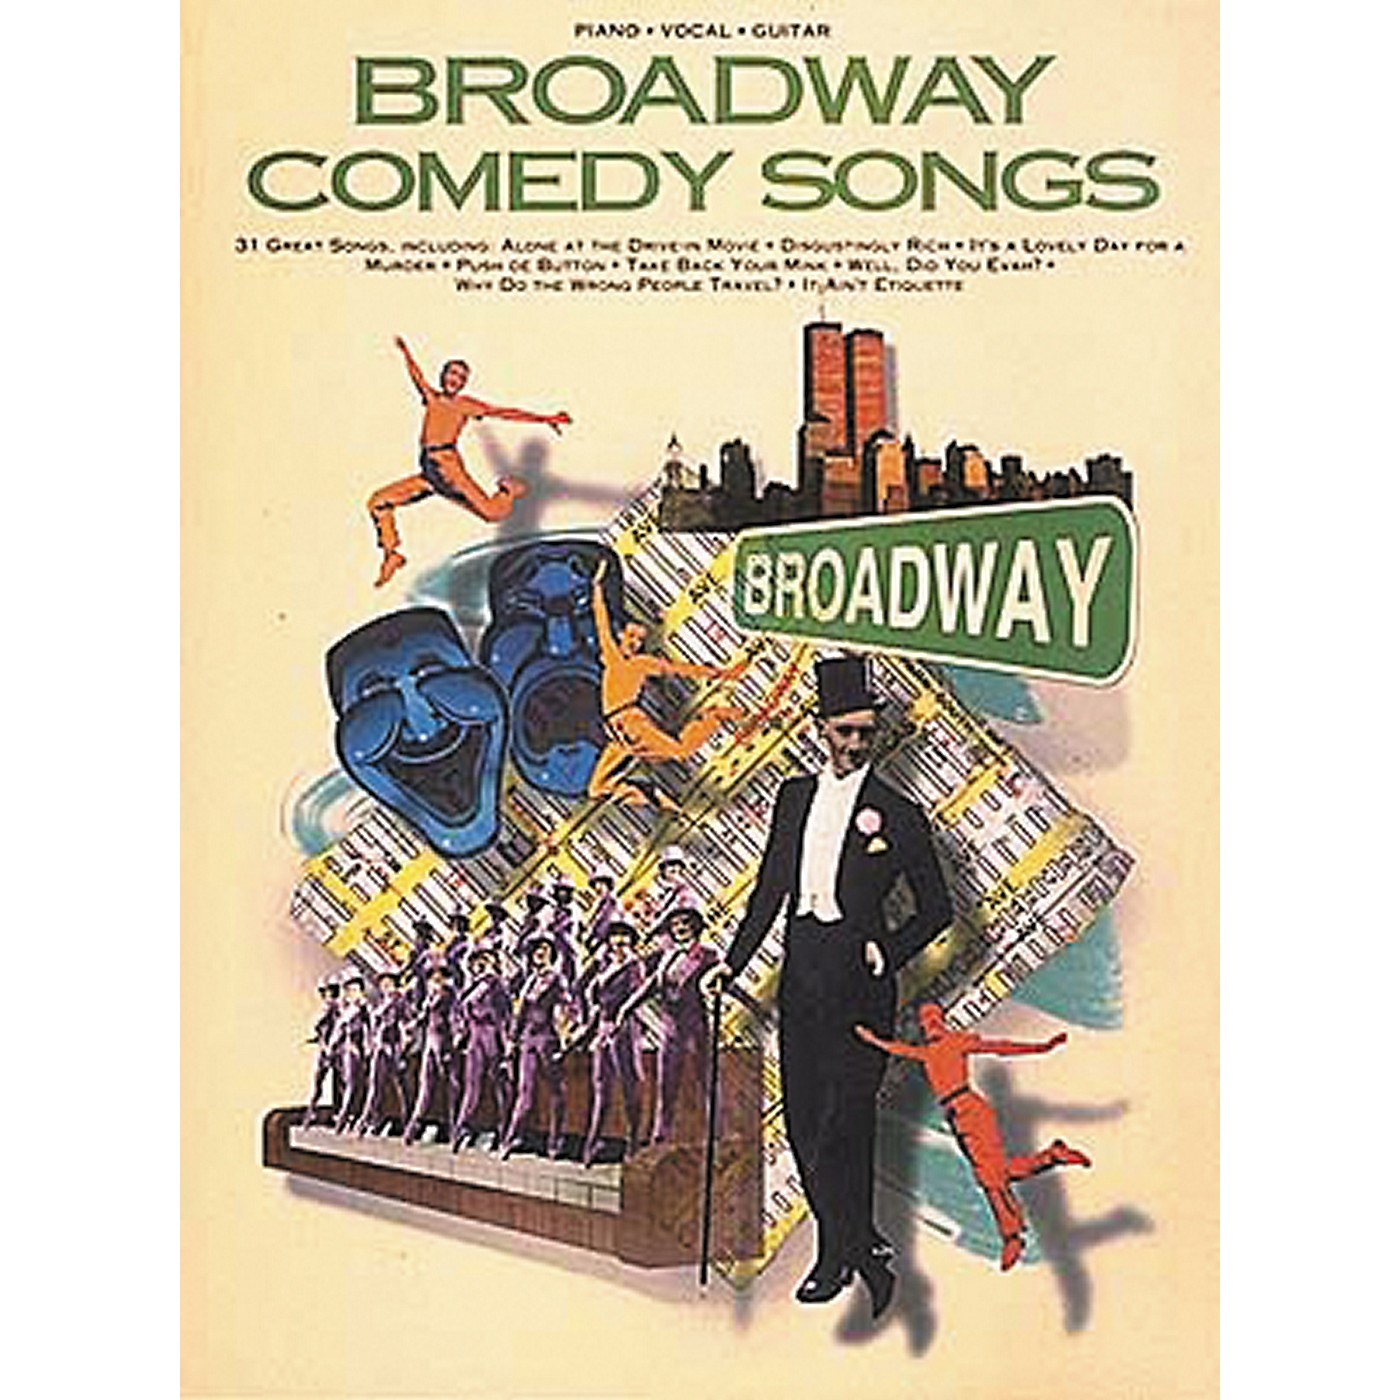 Hal Leonard Broadway Comedy Songs Piano, Vocal, Guitar Songbook thumbnail